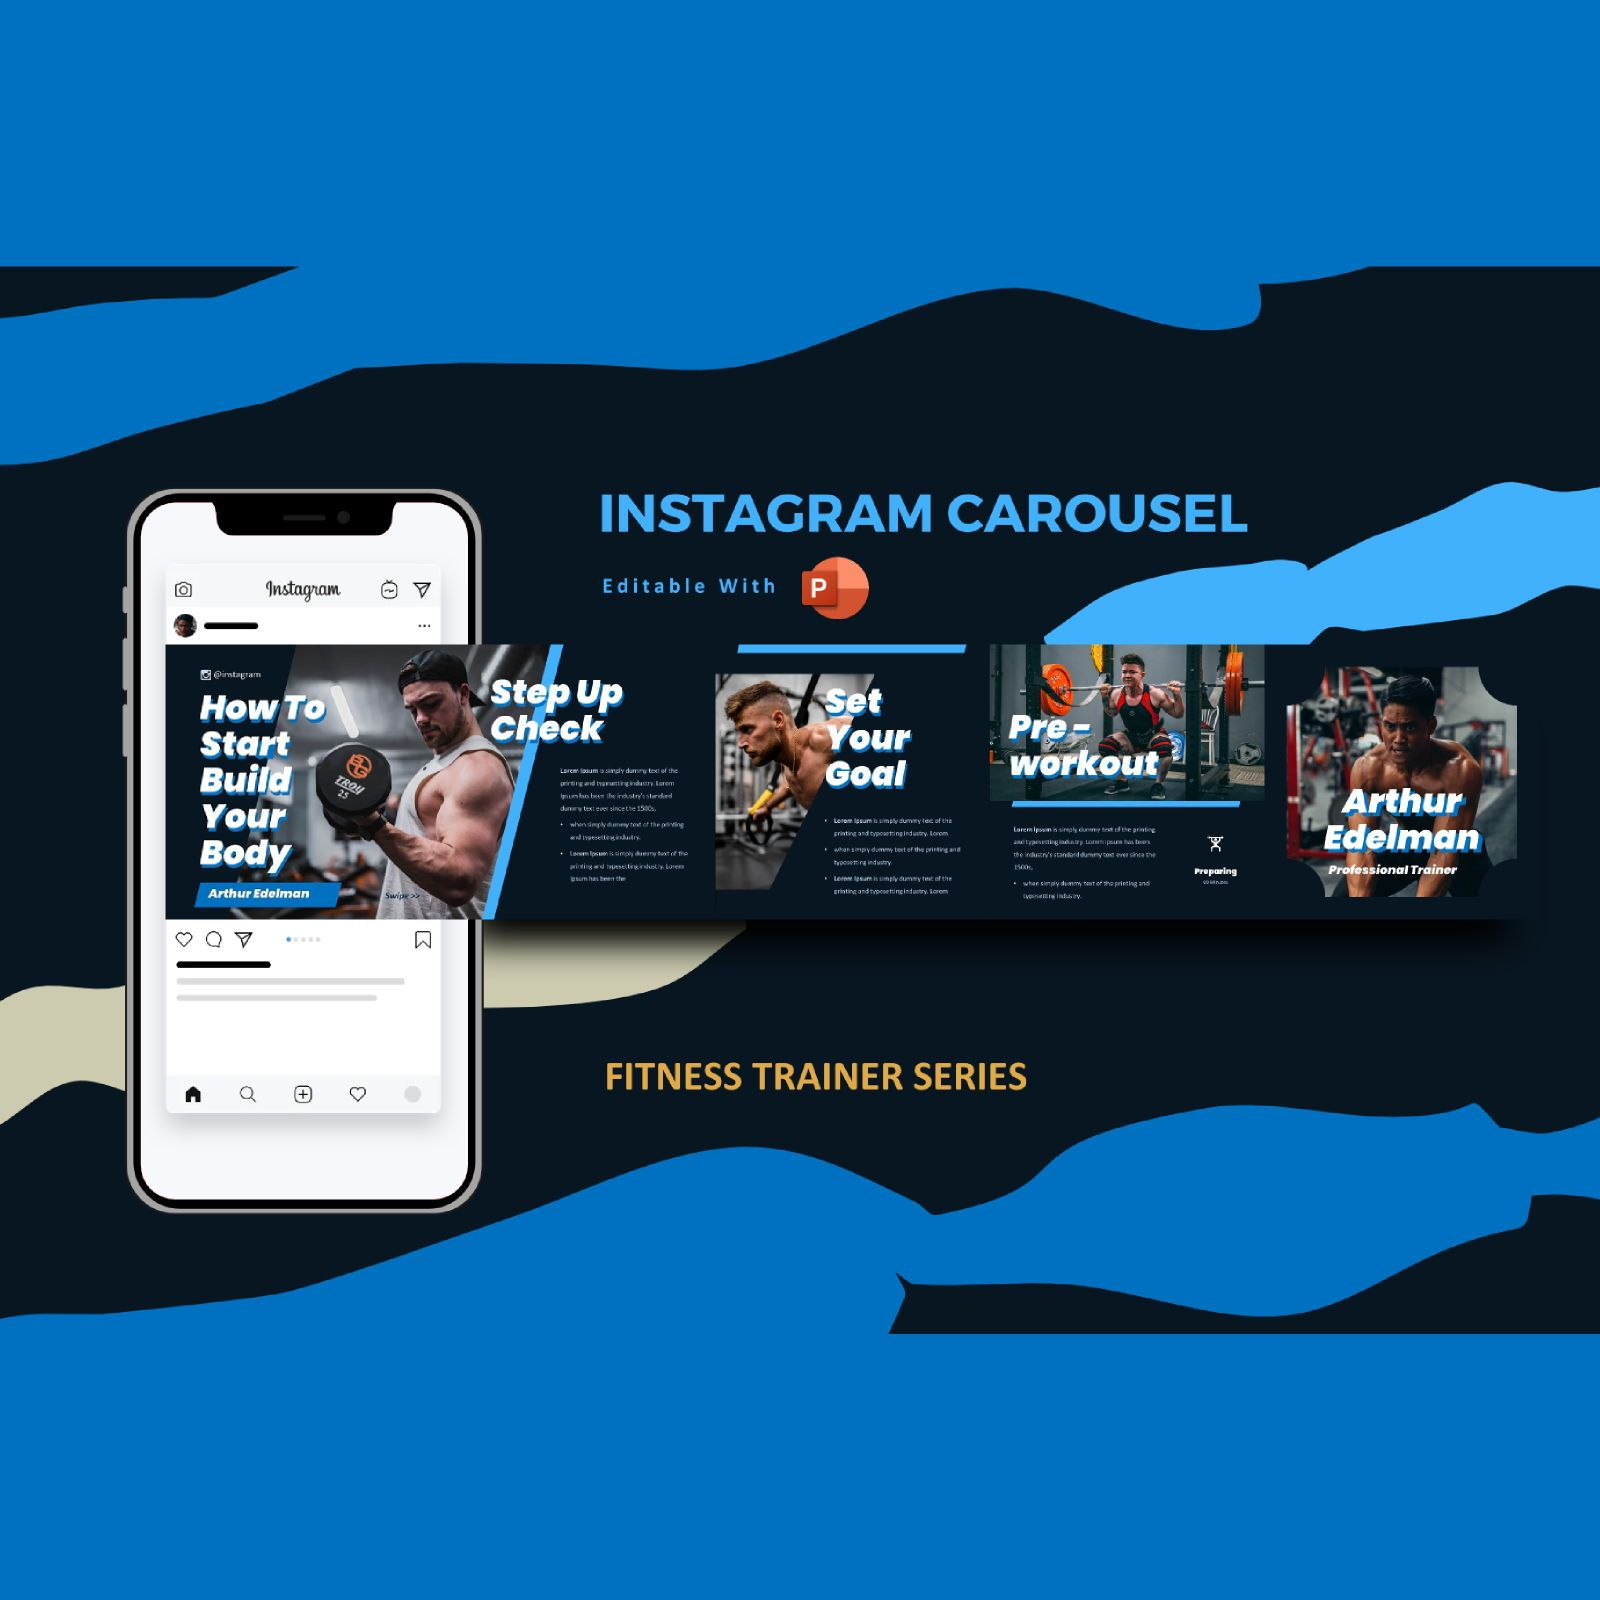 Gym trainer instagram carousel powerpoint template, 07529, Infographics — PoweredTemplate.com